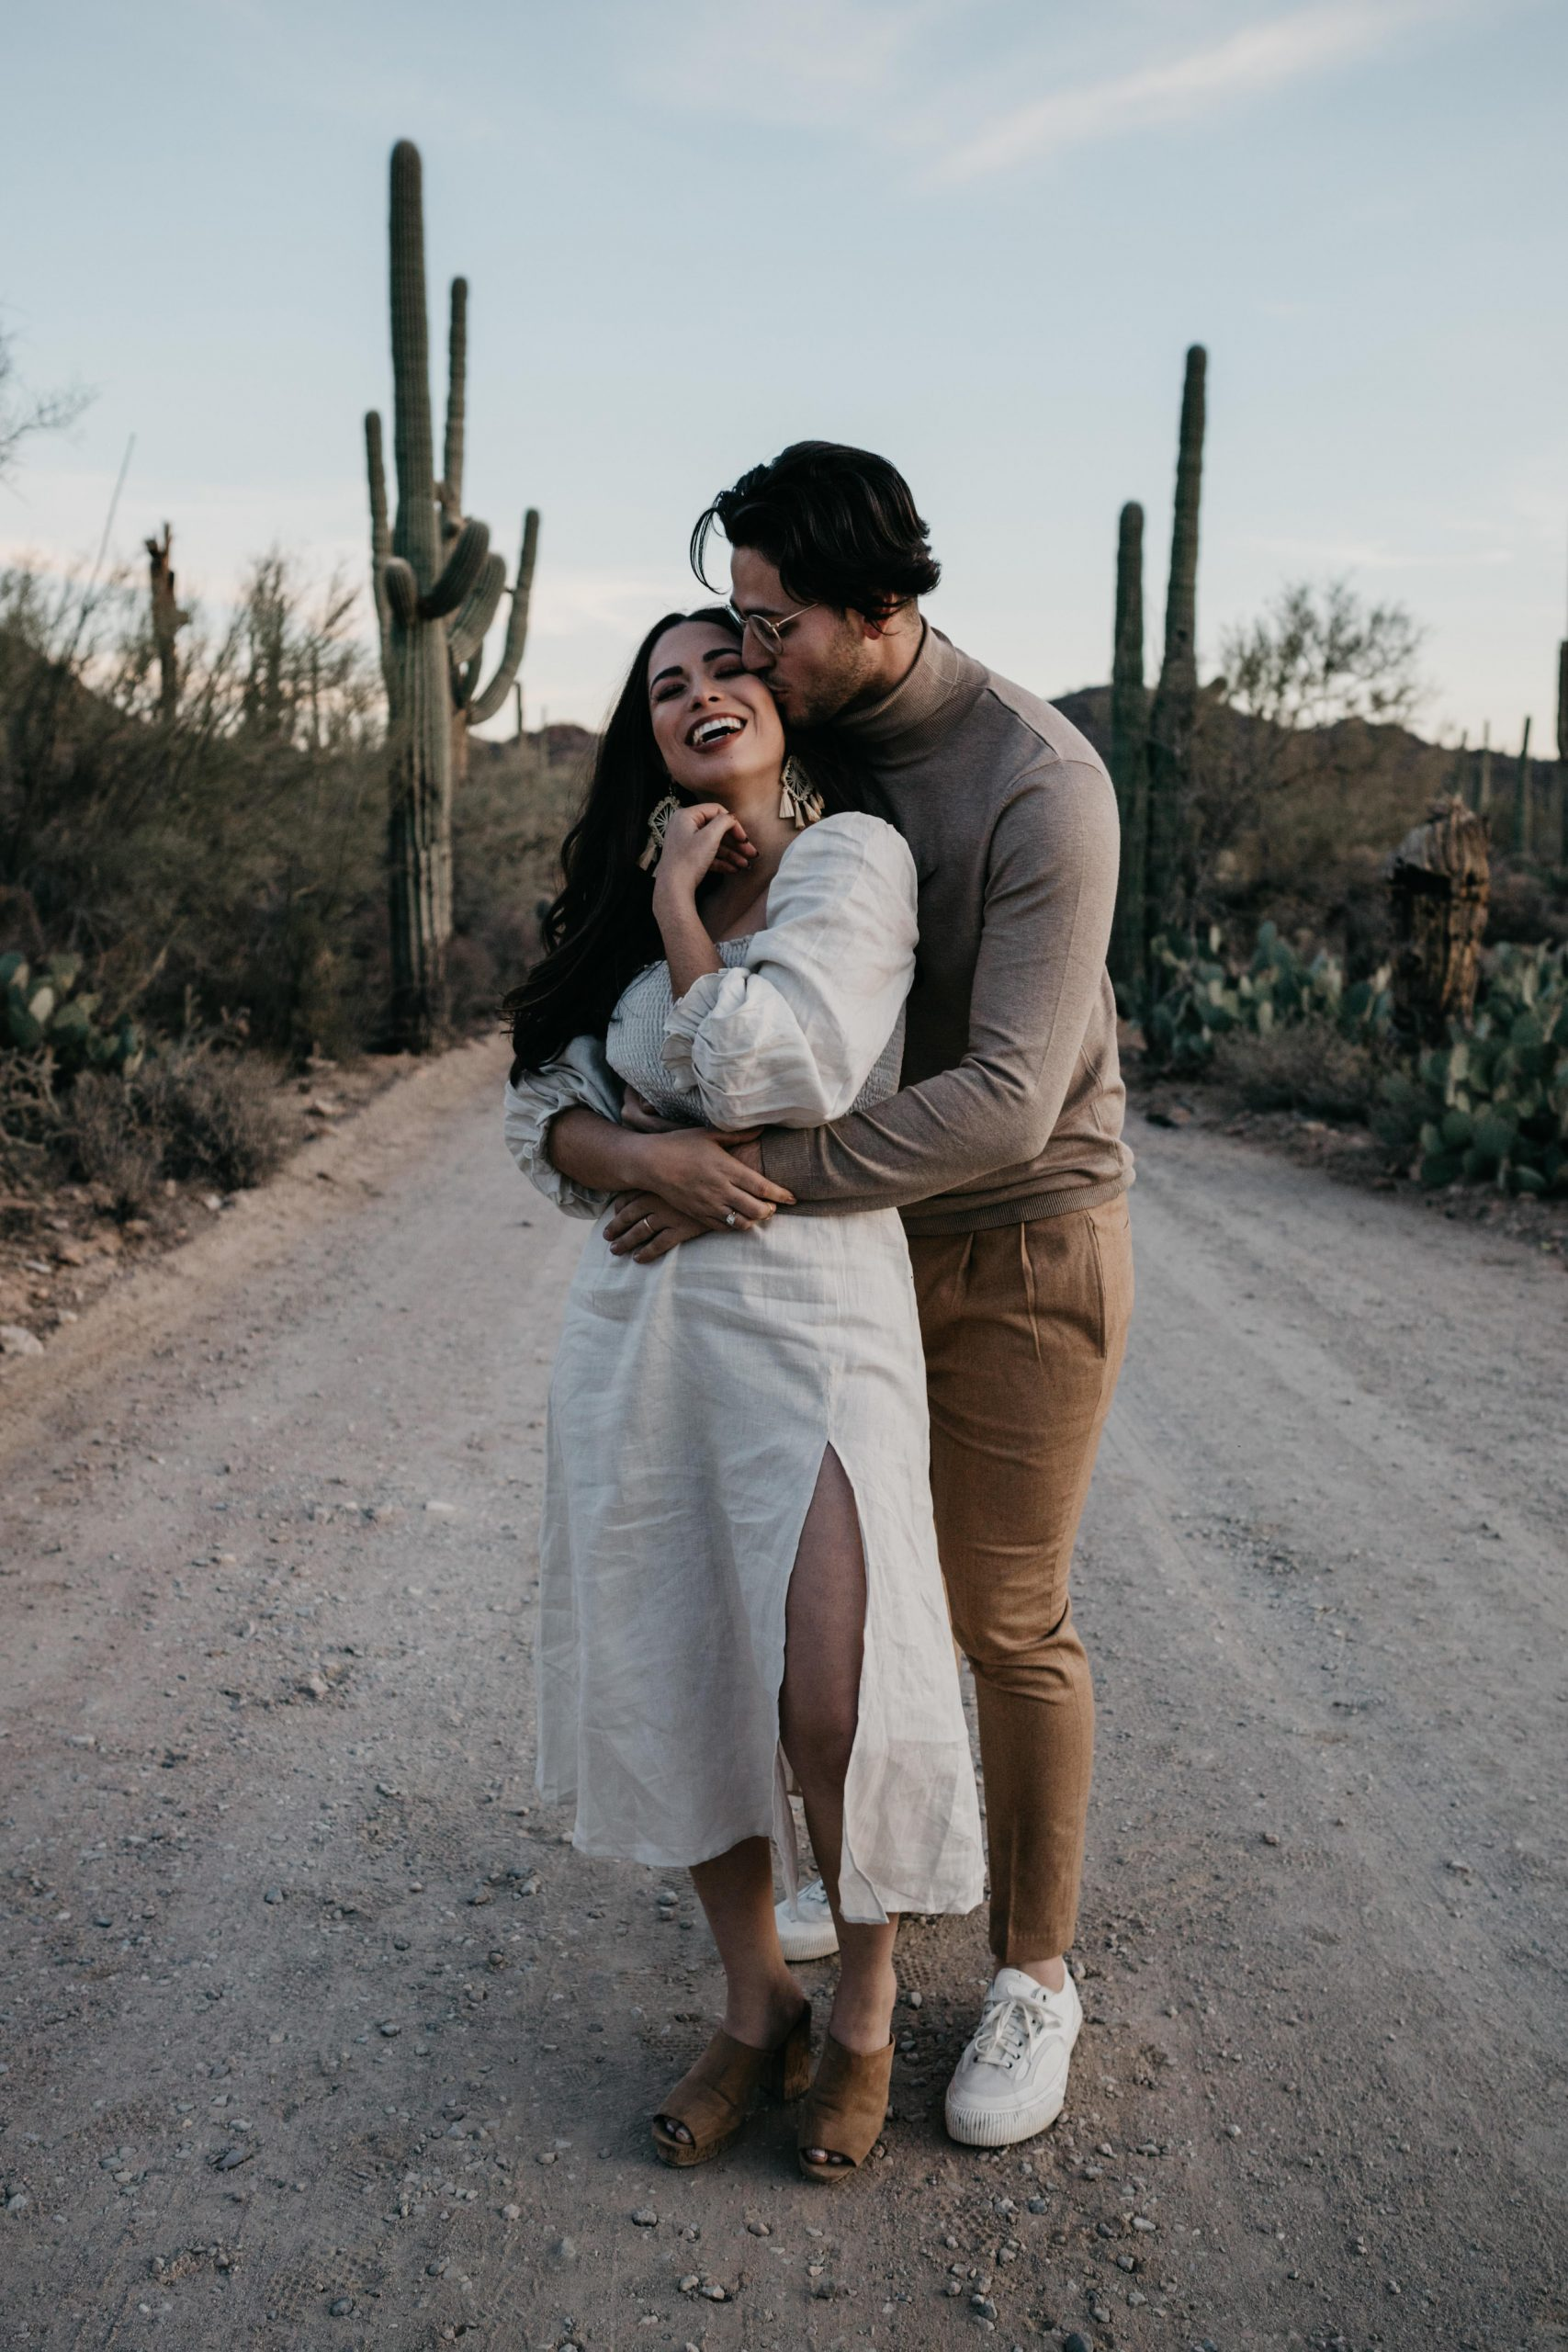 Couple embracing and laughing during desert engagement photos, image by Fatima Elreda Photo